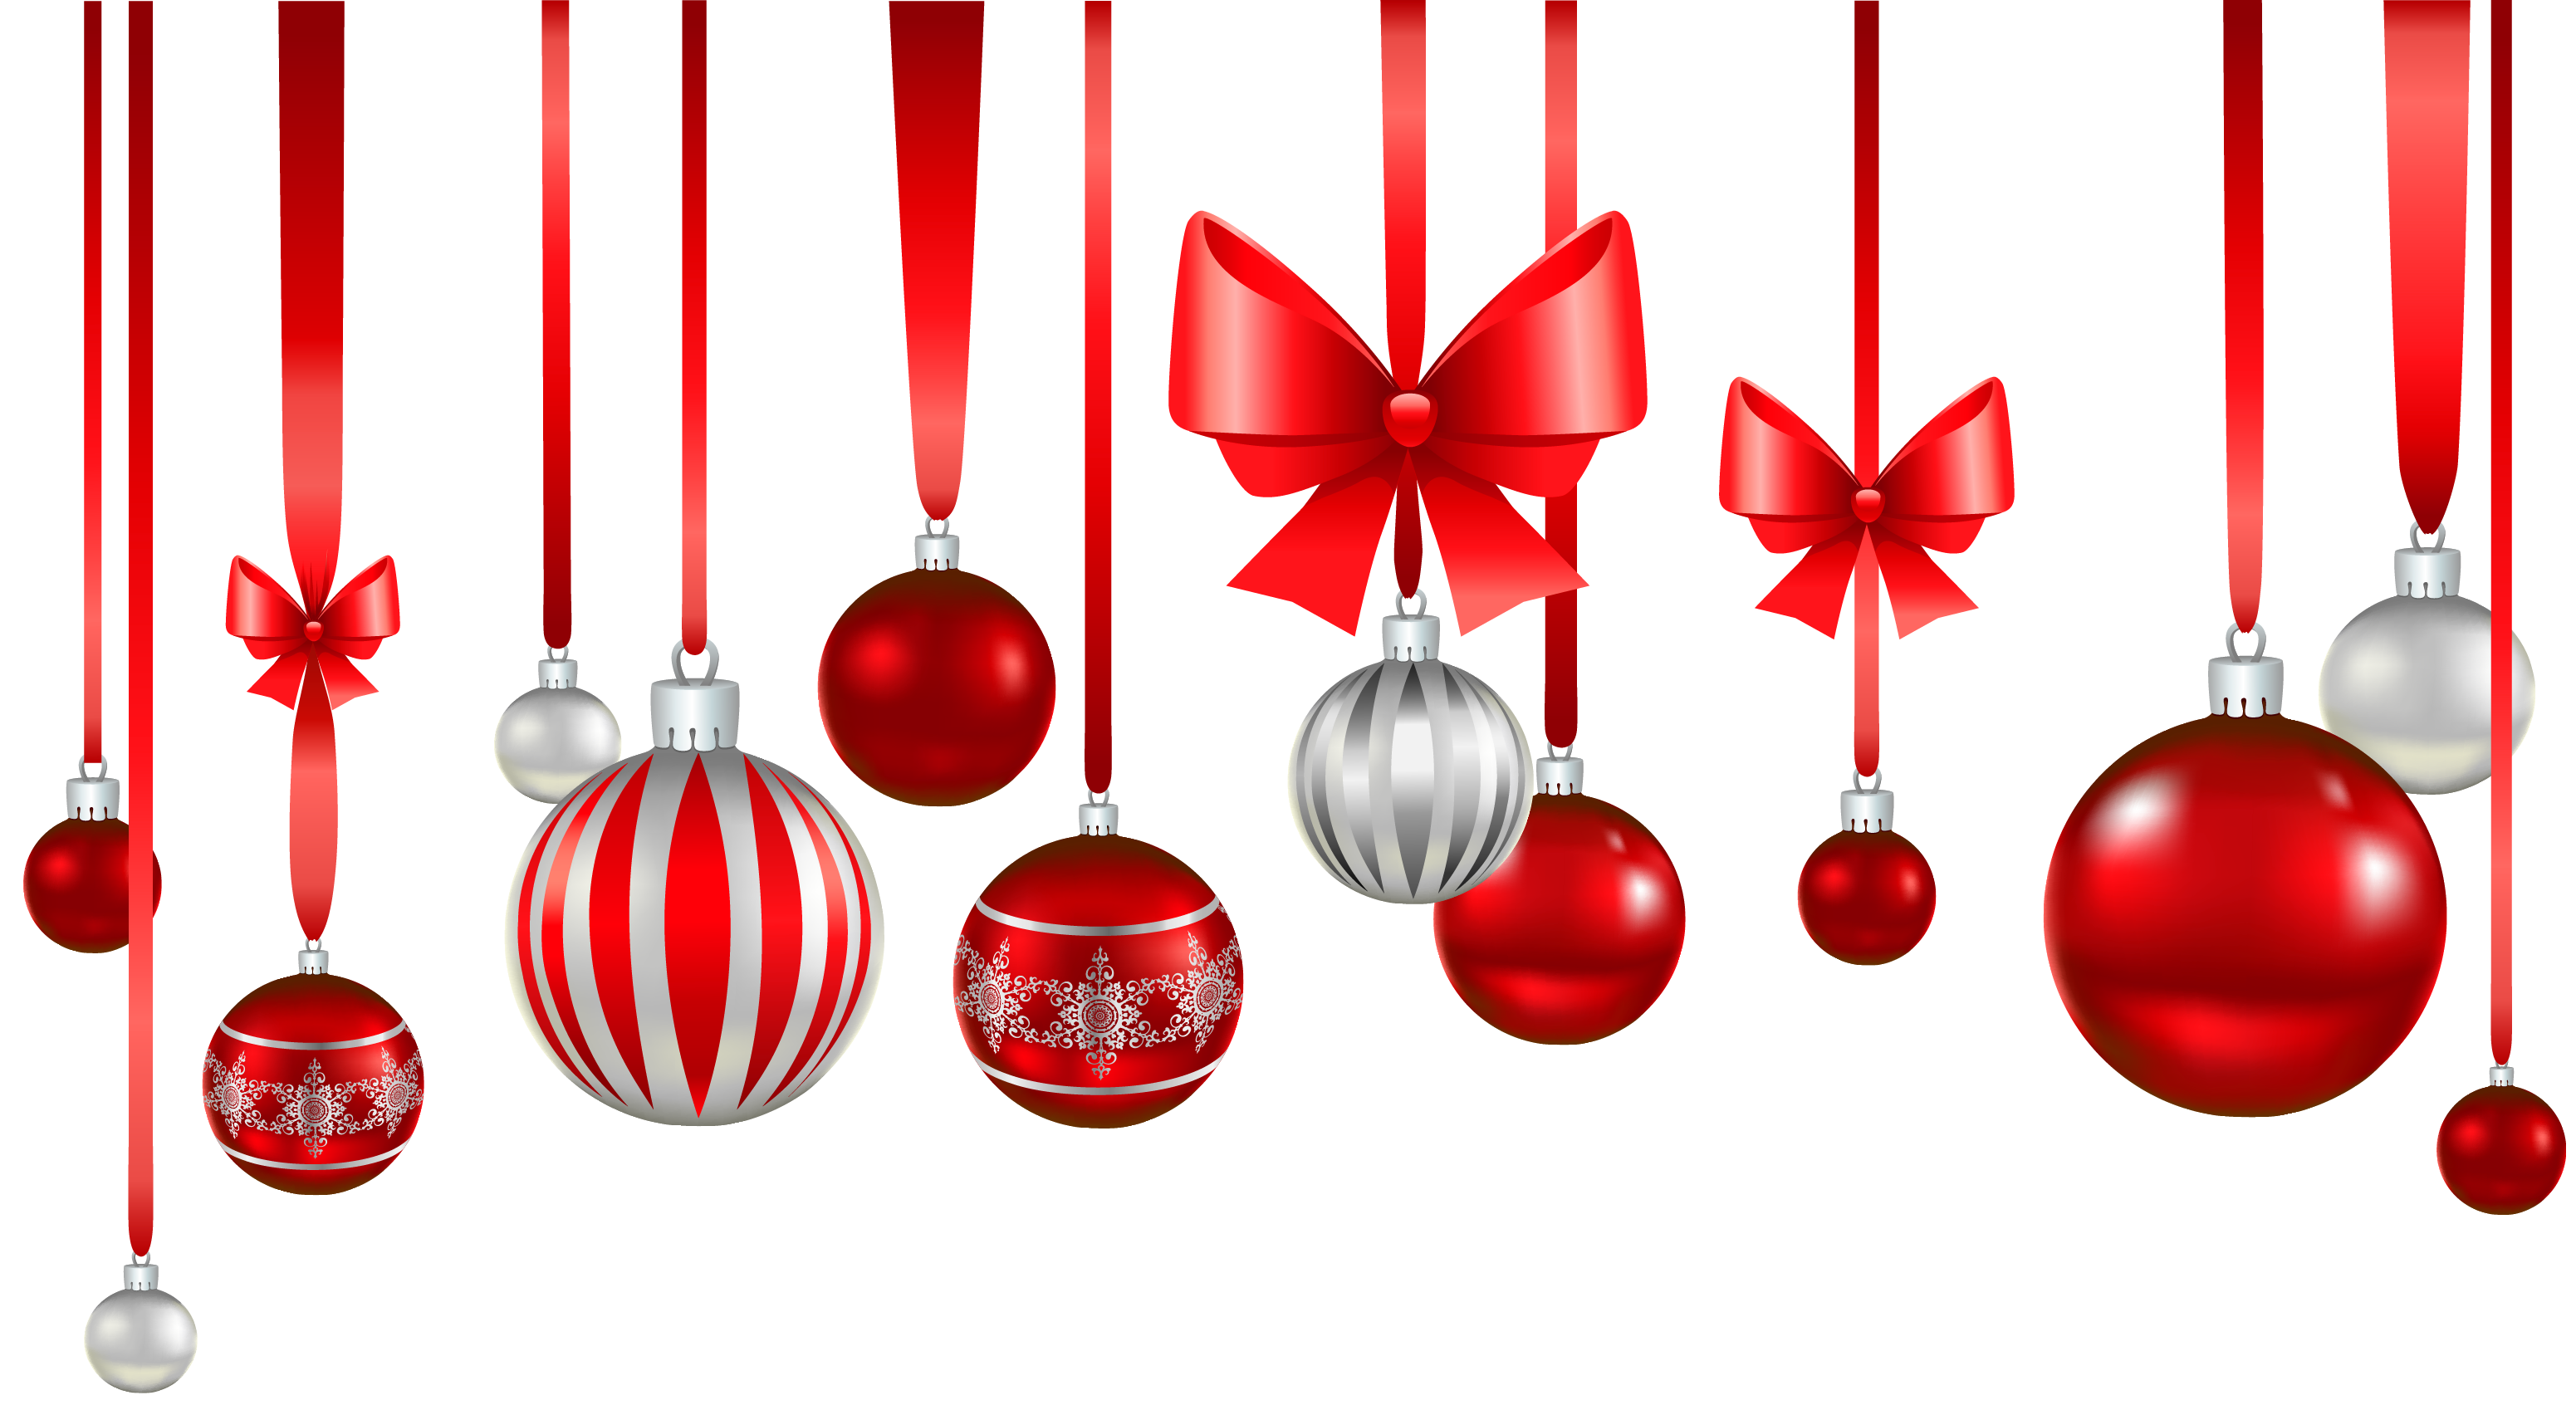 Christmas Red White Balls Ornament Png Picture Png 3102 1698 Christmas Decoration Items Red Christmas Decor Red Christmas Ornaments